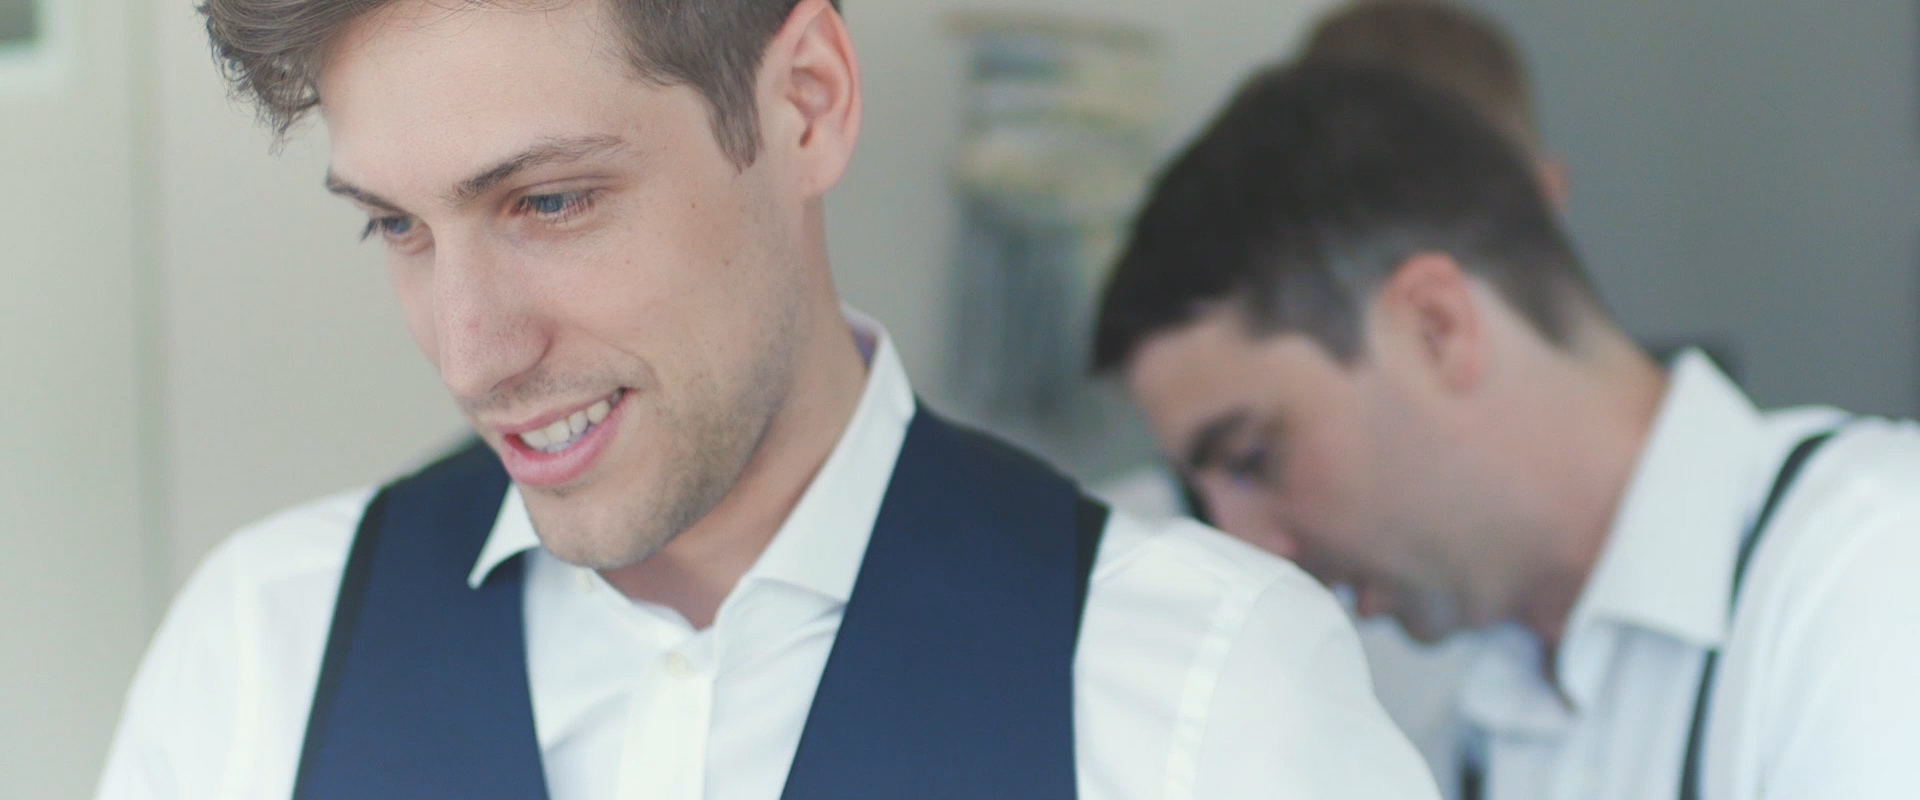 An image of a groom and his groomsmen getting ready on his wedding day; taken from a Toronto Wedding Video